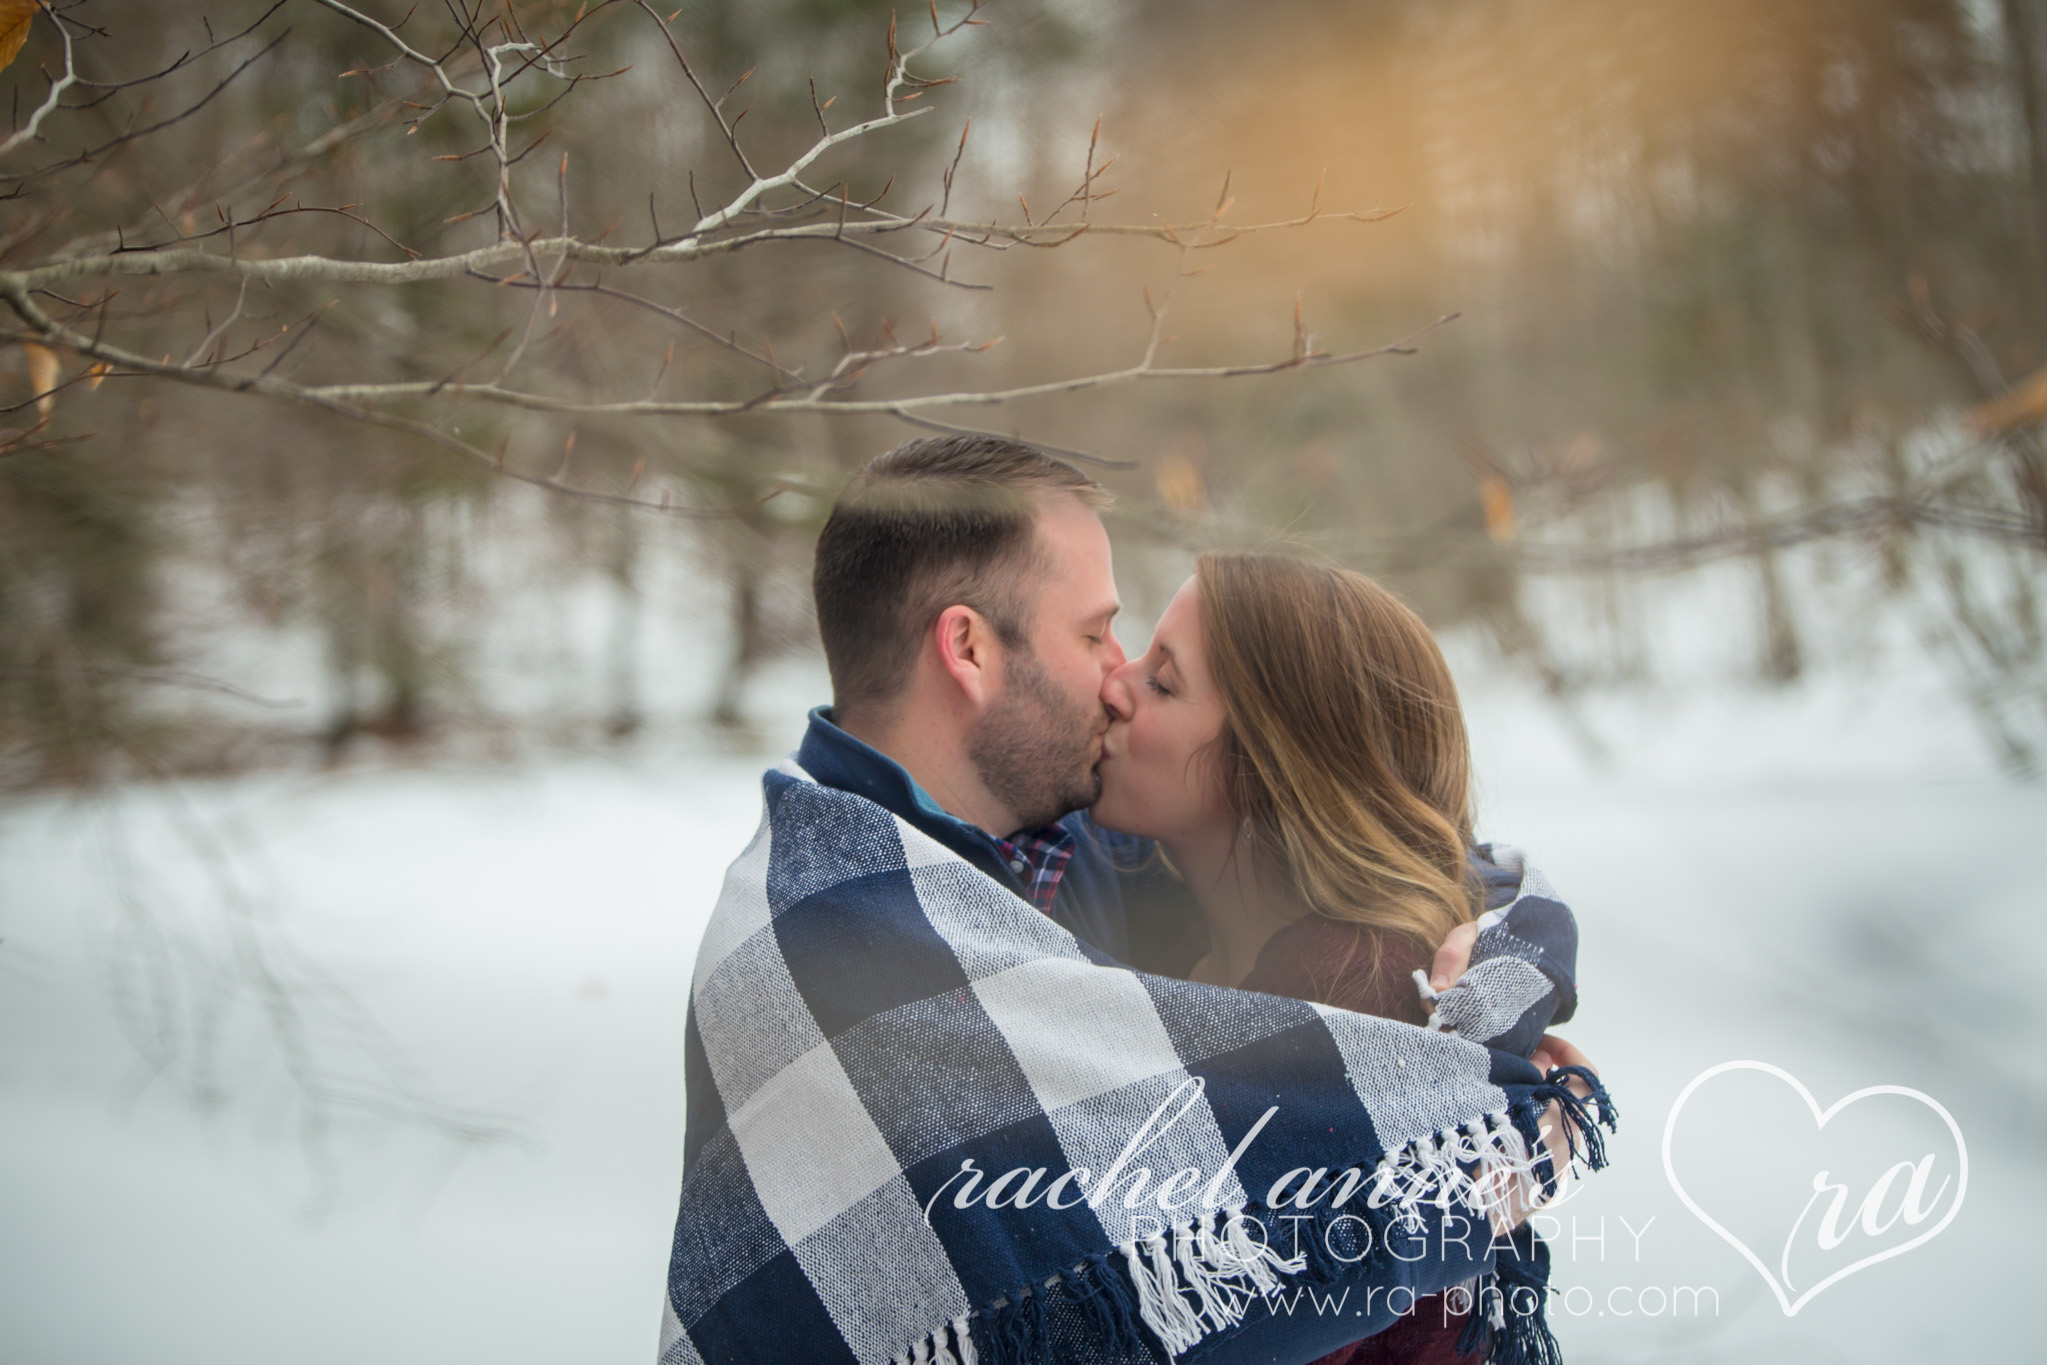 024-JKM-DUBOIS-PA-ENGAGEMENT-PHOTOGRAPHY.jpg